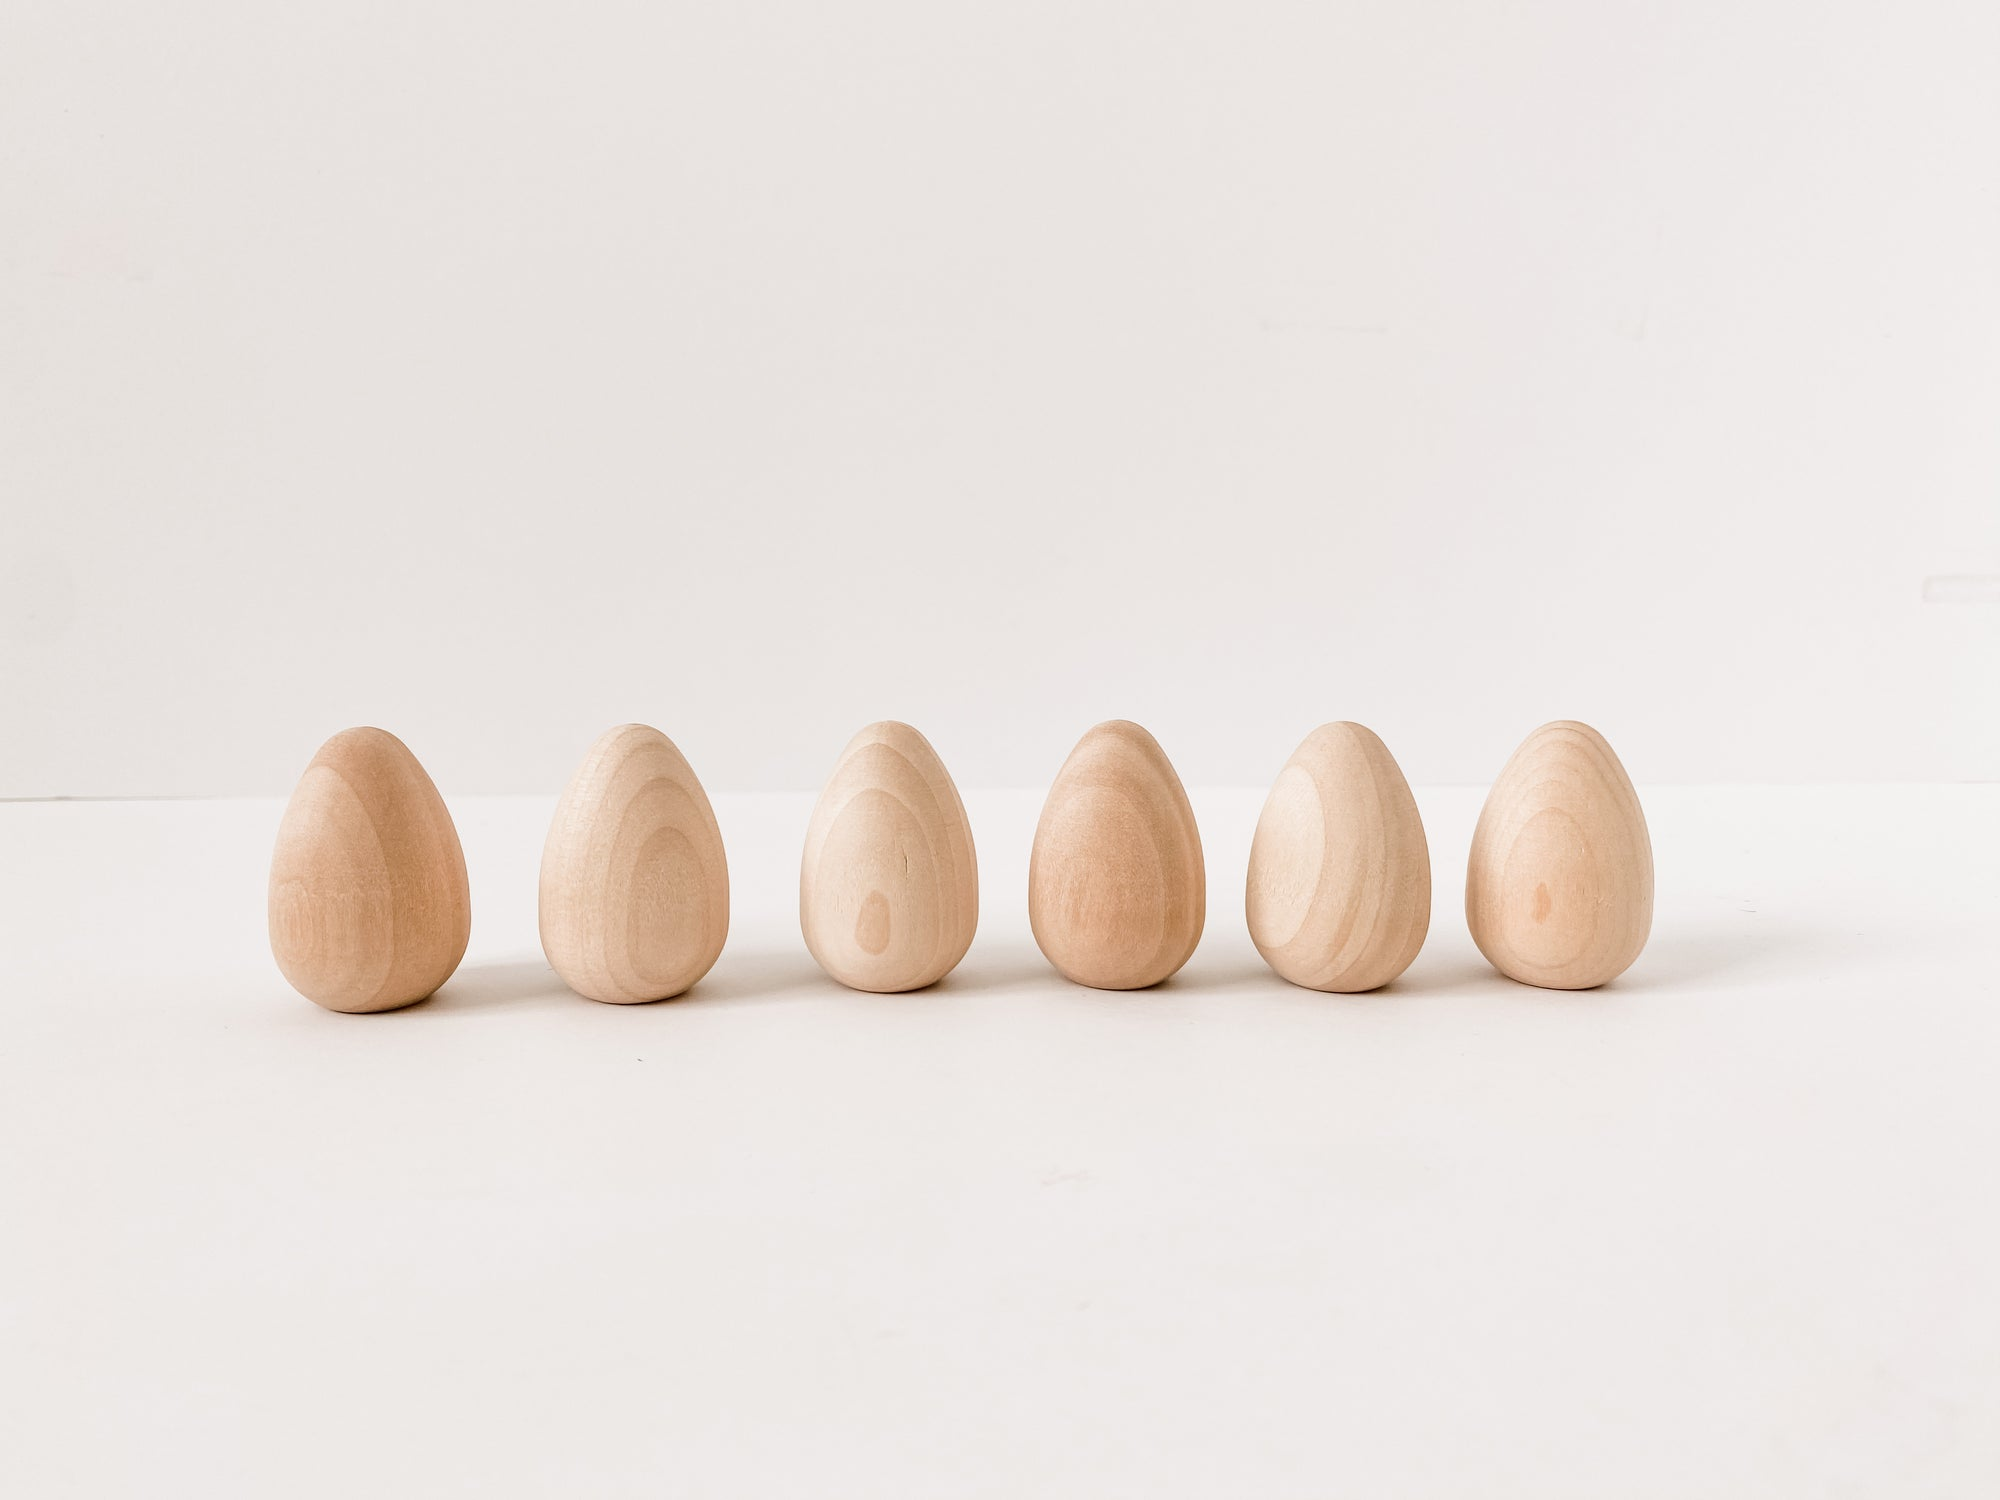 Wooden Eggs (Limited Edition)